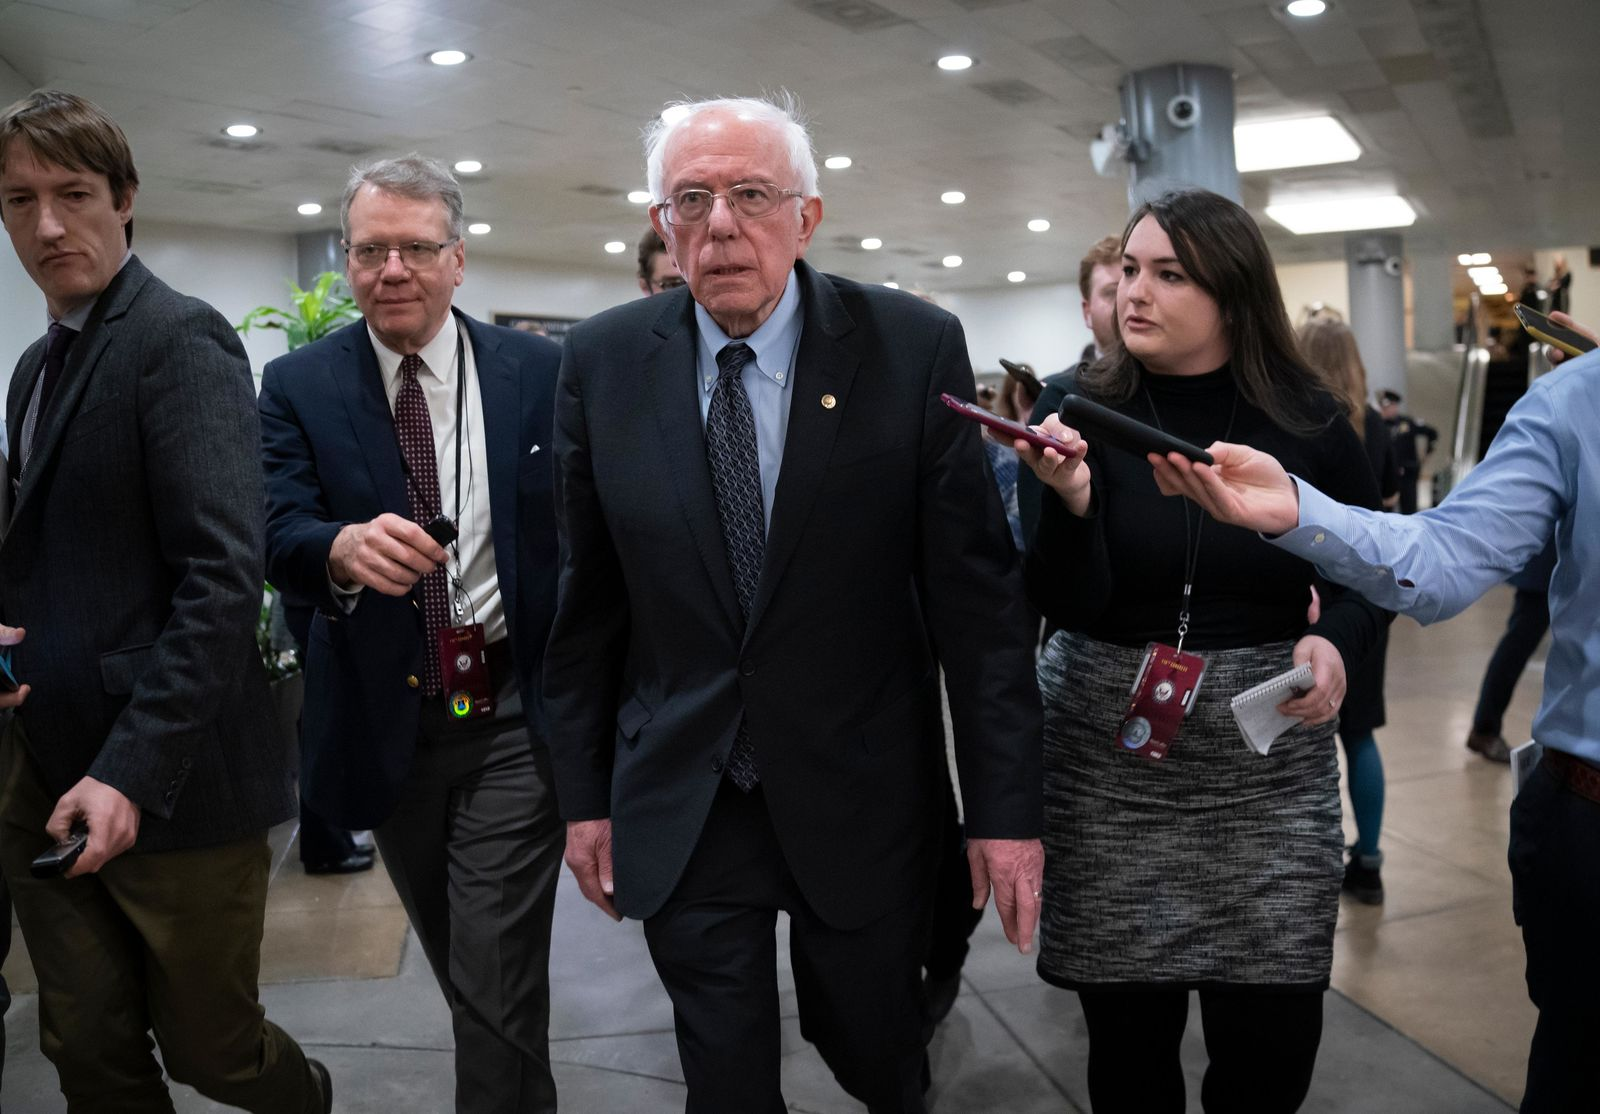 FILE - Democratic presidential candidate, Sen. Bernie Sanders, I-Vt., talks to reporters just after the start of the impeachment trial of President Donald Trump on charges of abuse of power and obstruction of Congress, at the Capitol in Washington, Thursday, Jan. 16, 2020. (AP Photo/J. Scott Applewhite)